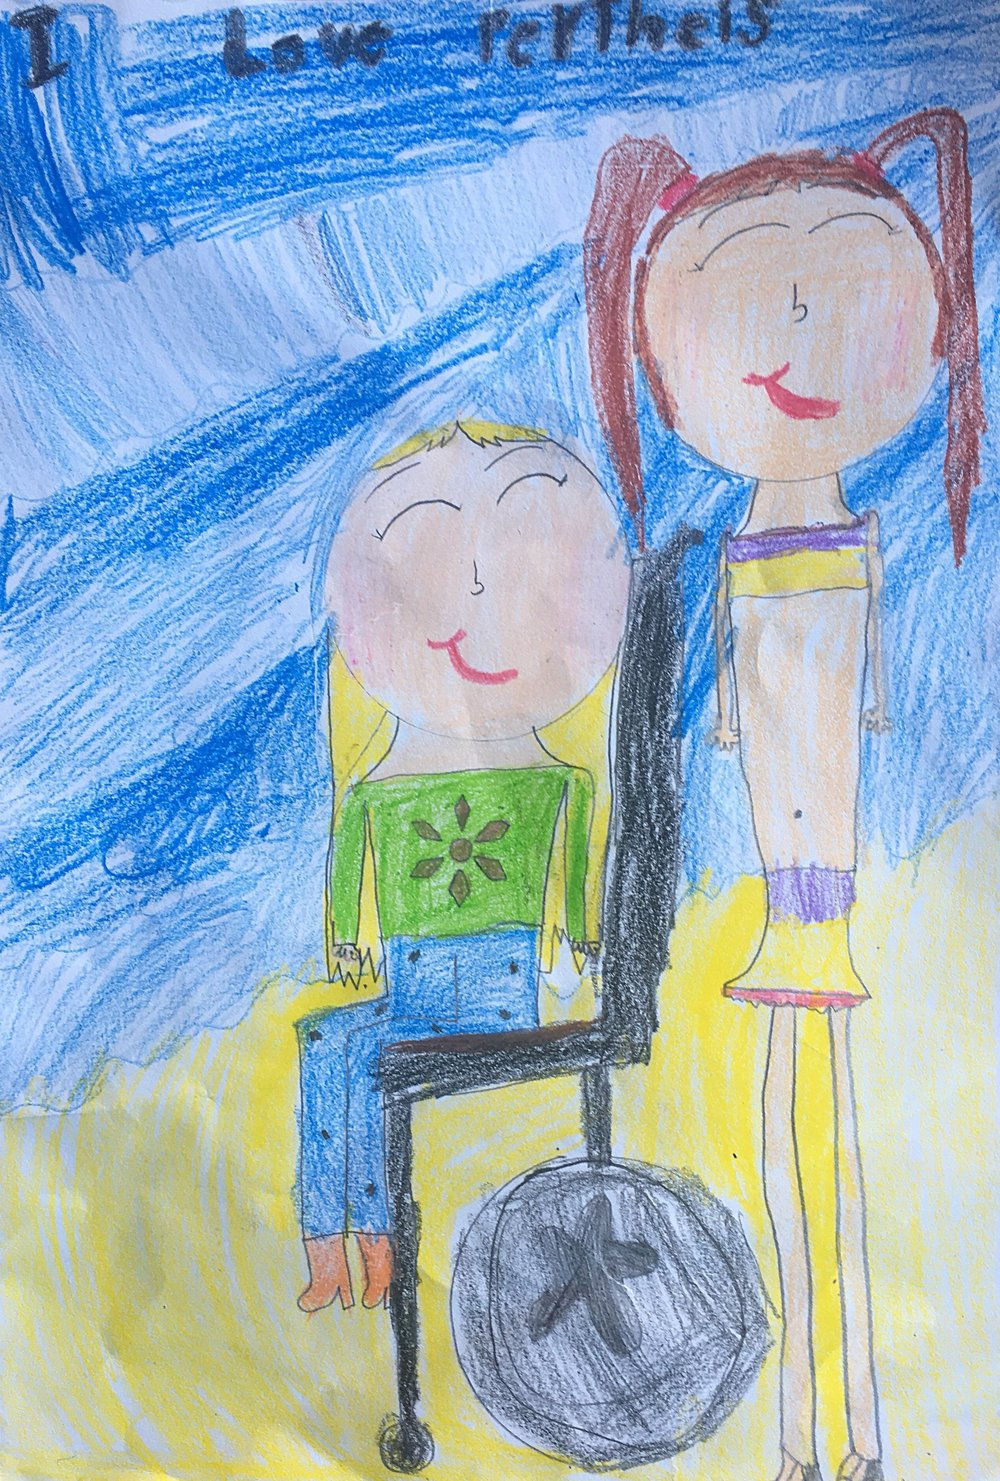 002 - WHEELIES IN MY WHEELCHAIR by Ruby Mulhearn (age 7) in Gold Coast, Australia